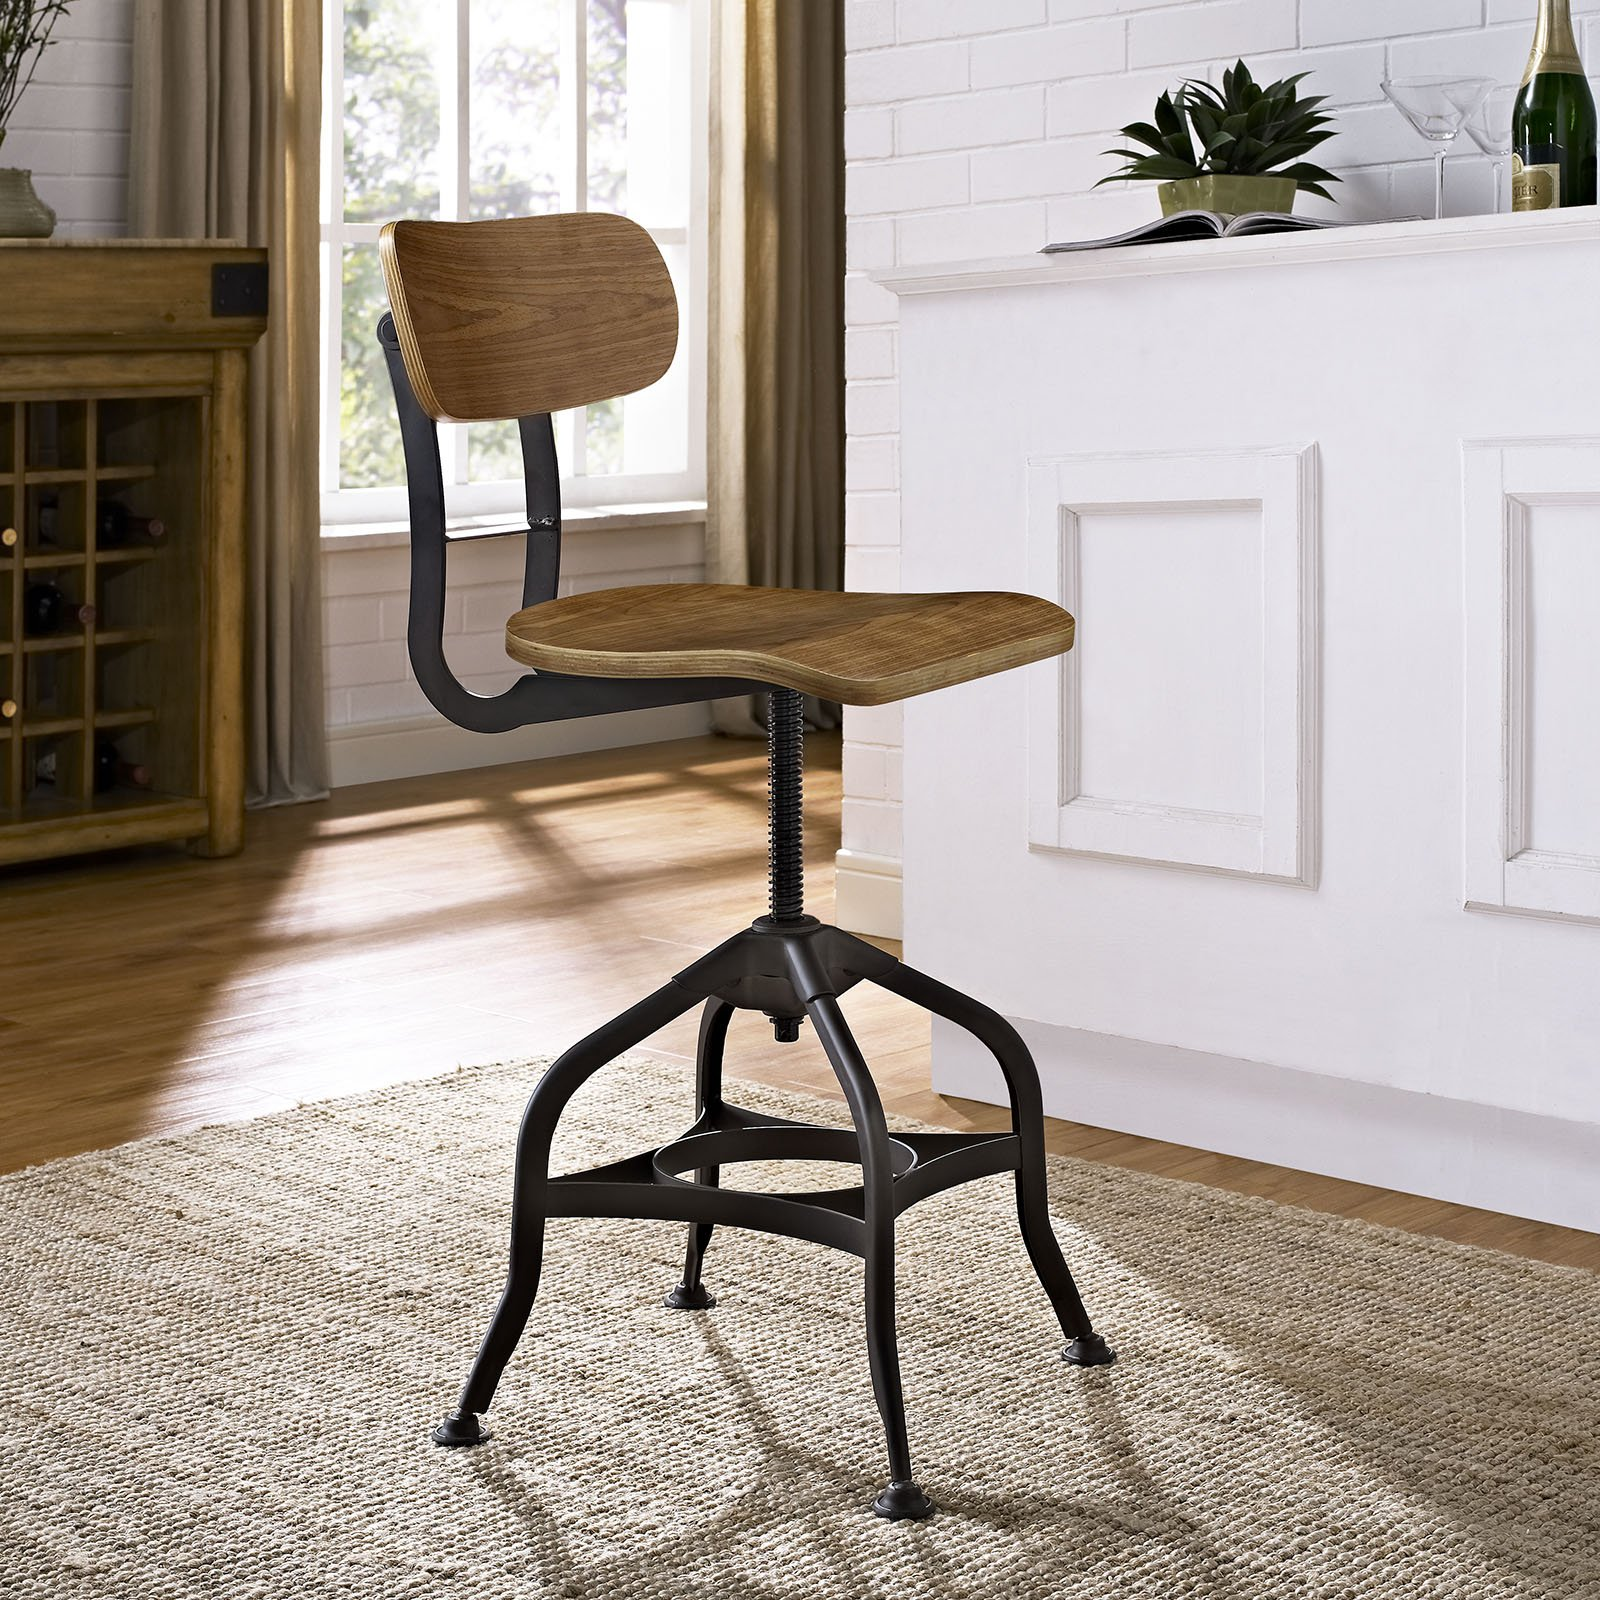 Modway Mark Industrial Dining Stool, Brown by Modway (Image #4)